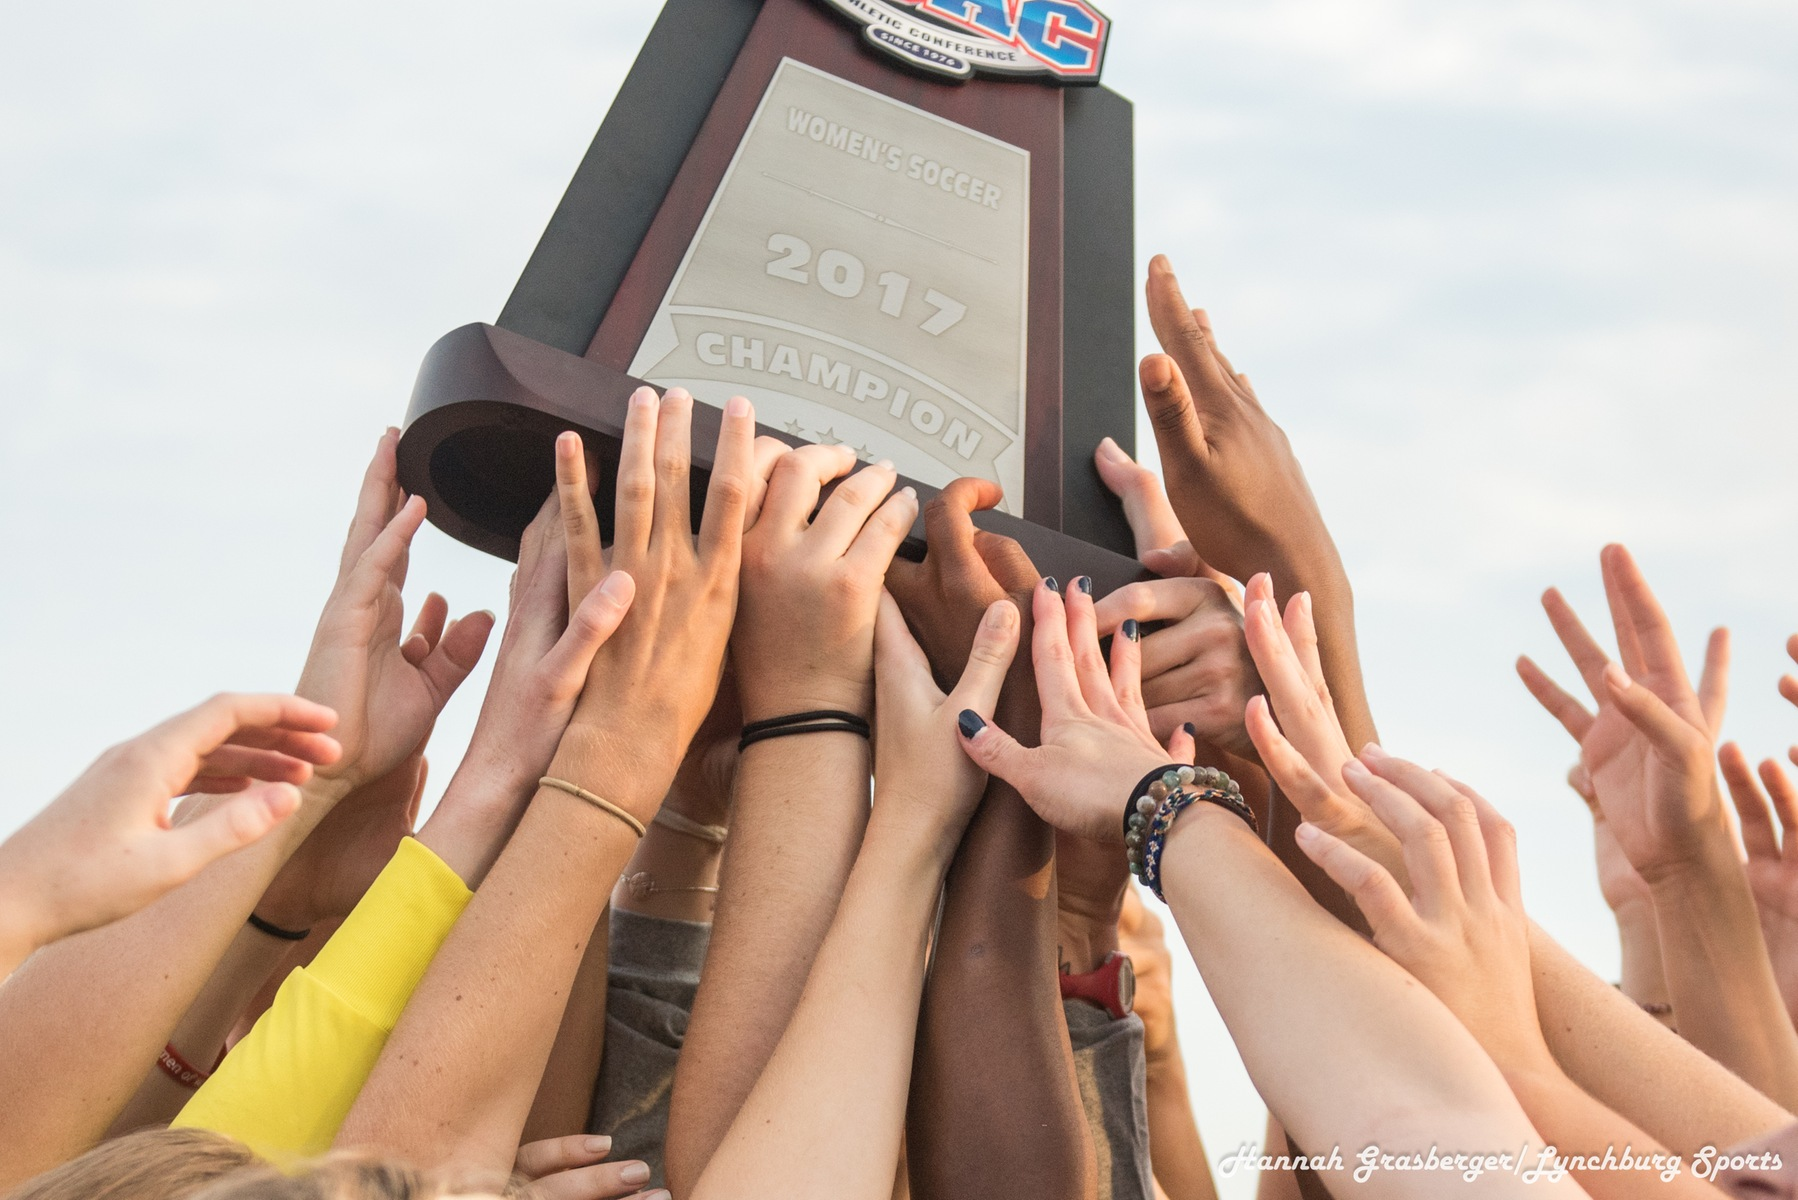 Hands lift up the 2017 ODAC women's soccer championship trophy